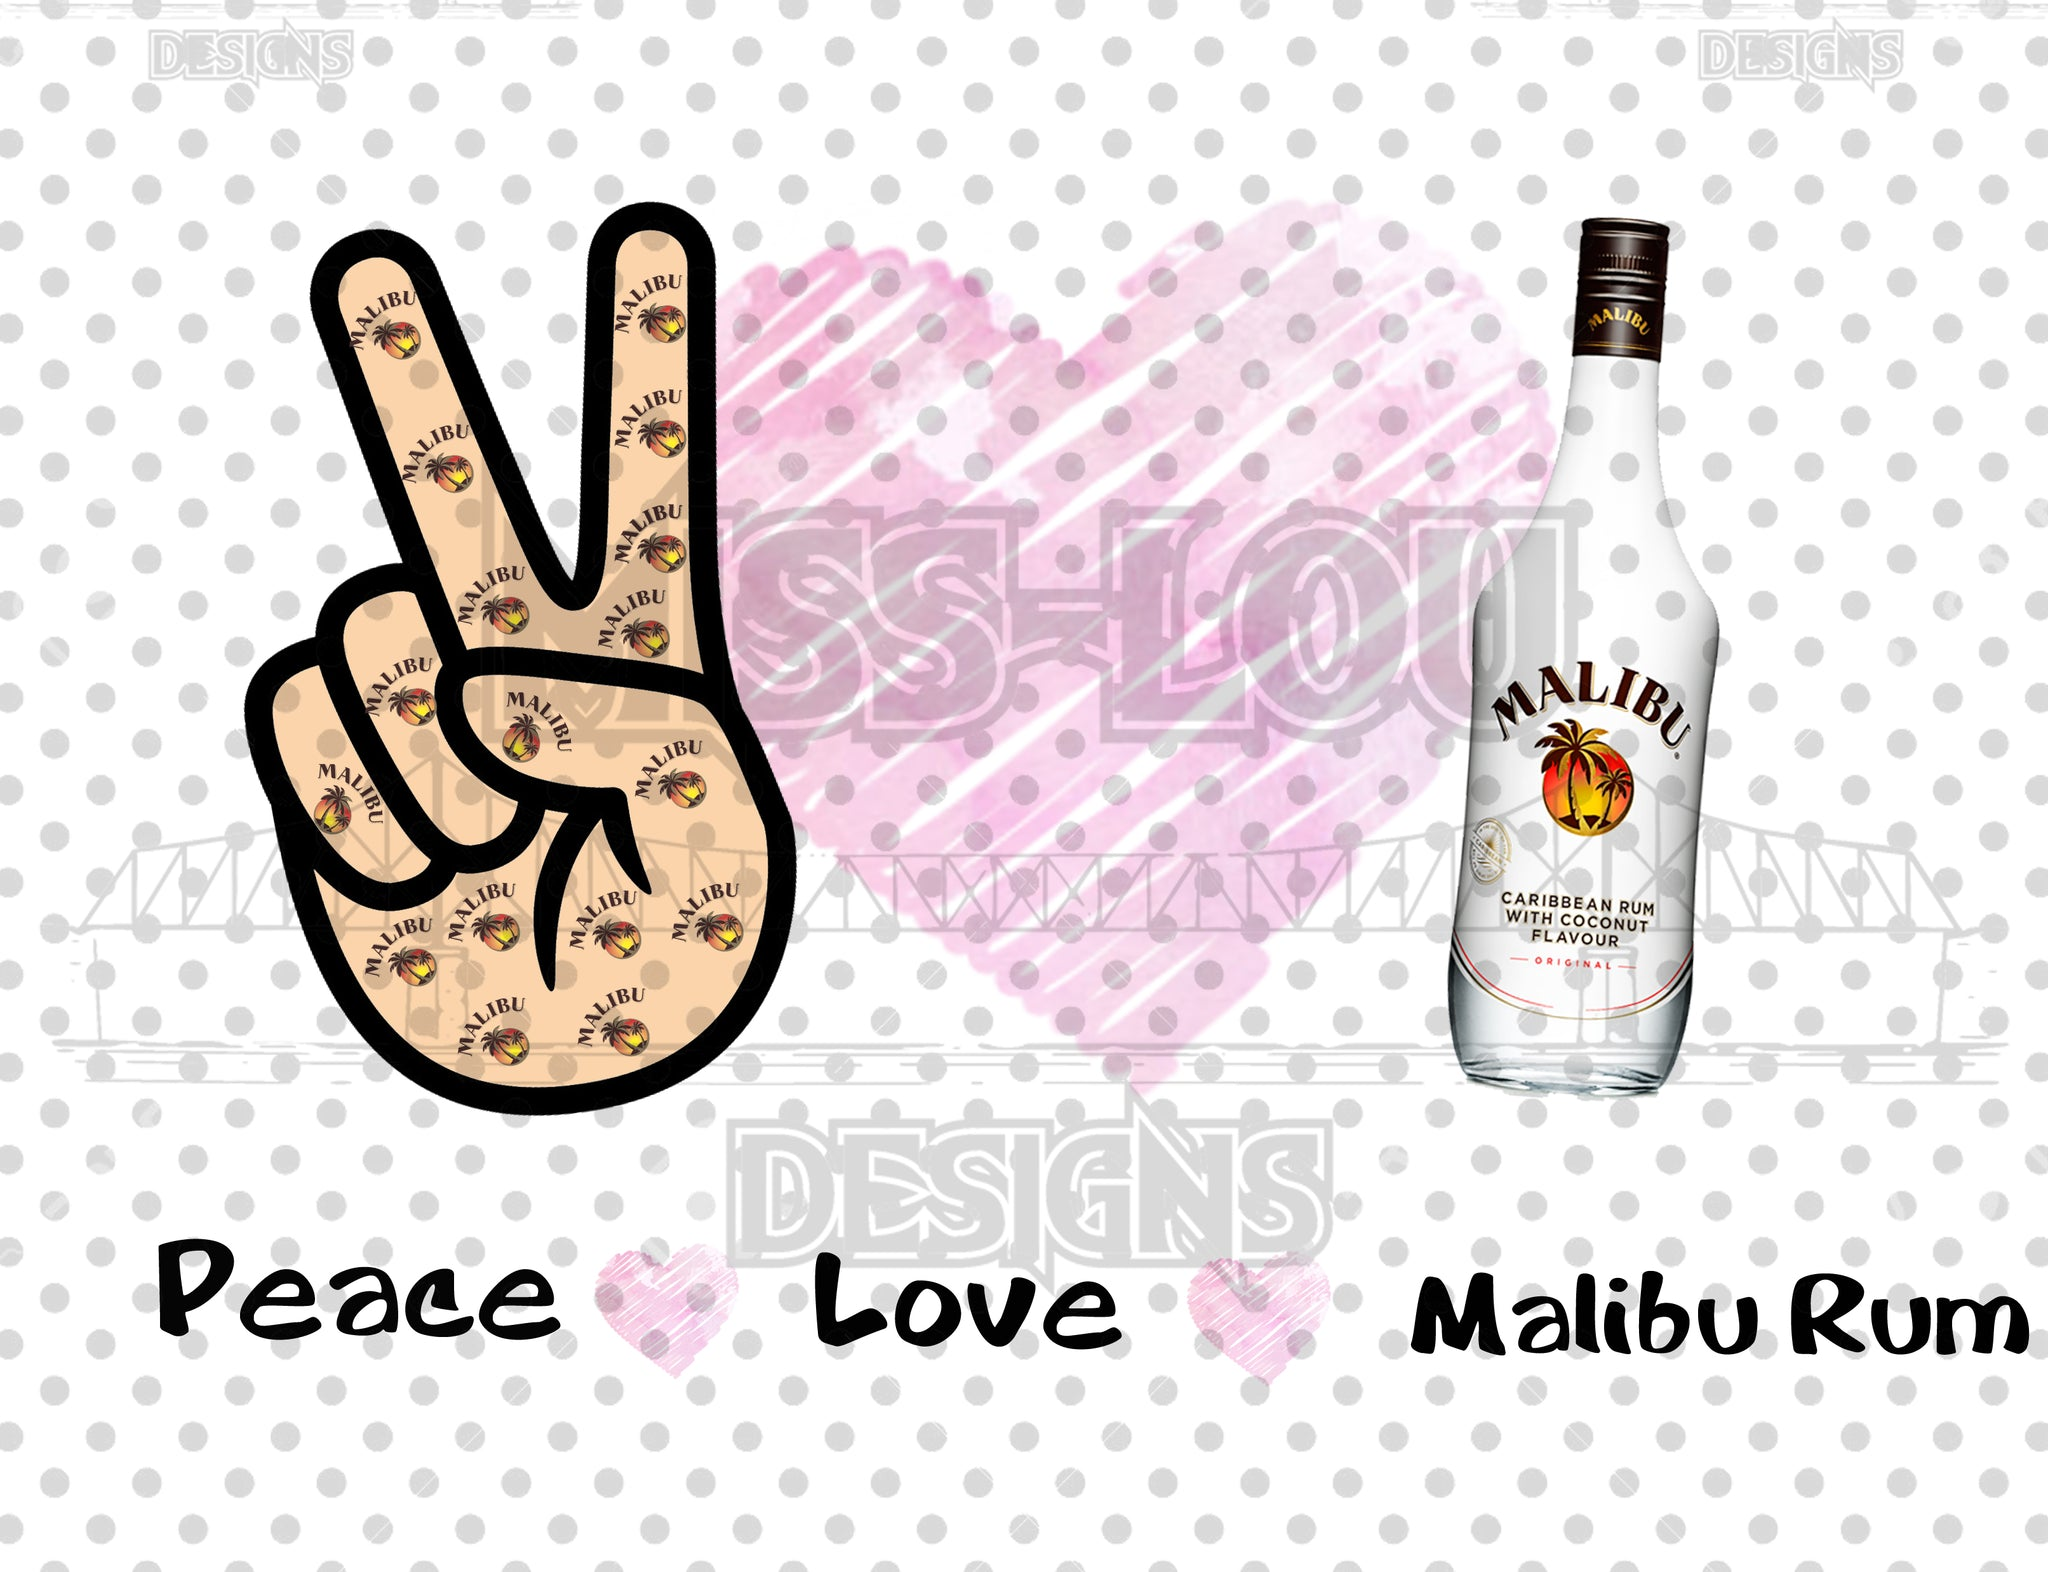 Peace Love Malibu Rum Digital Download